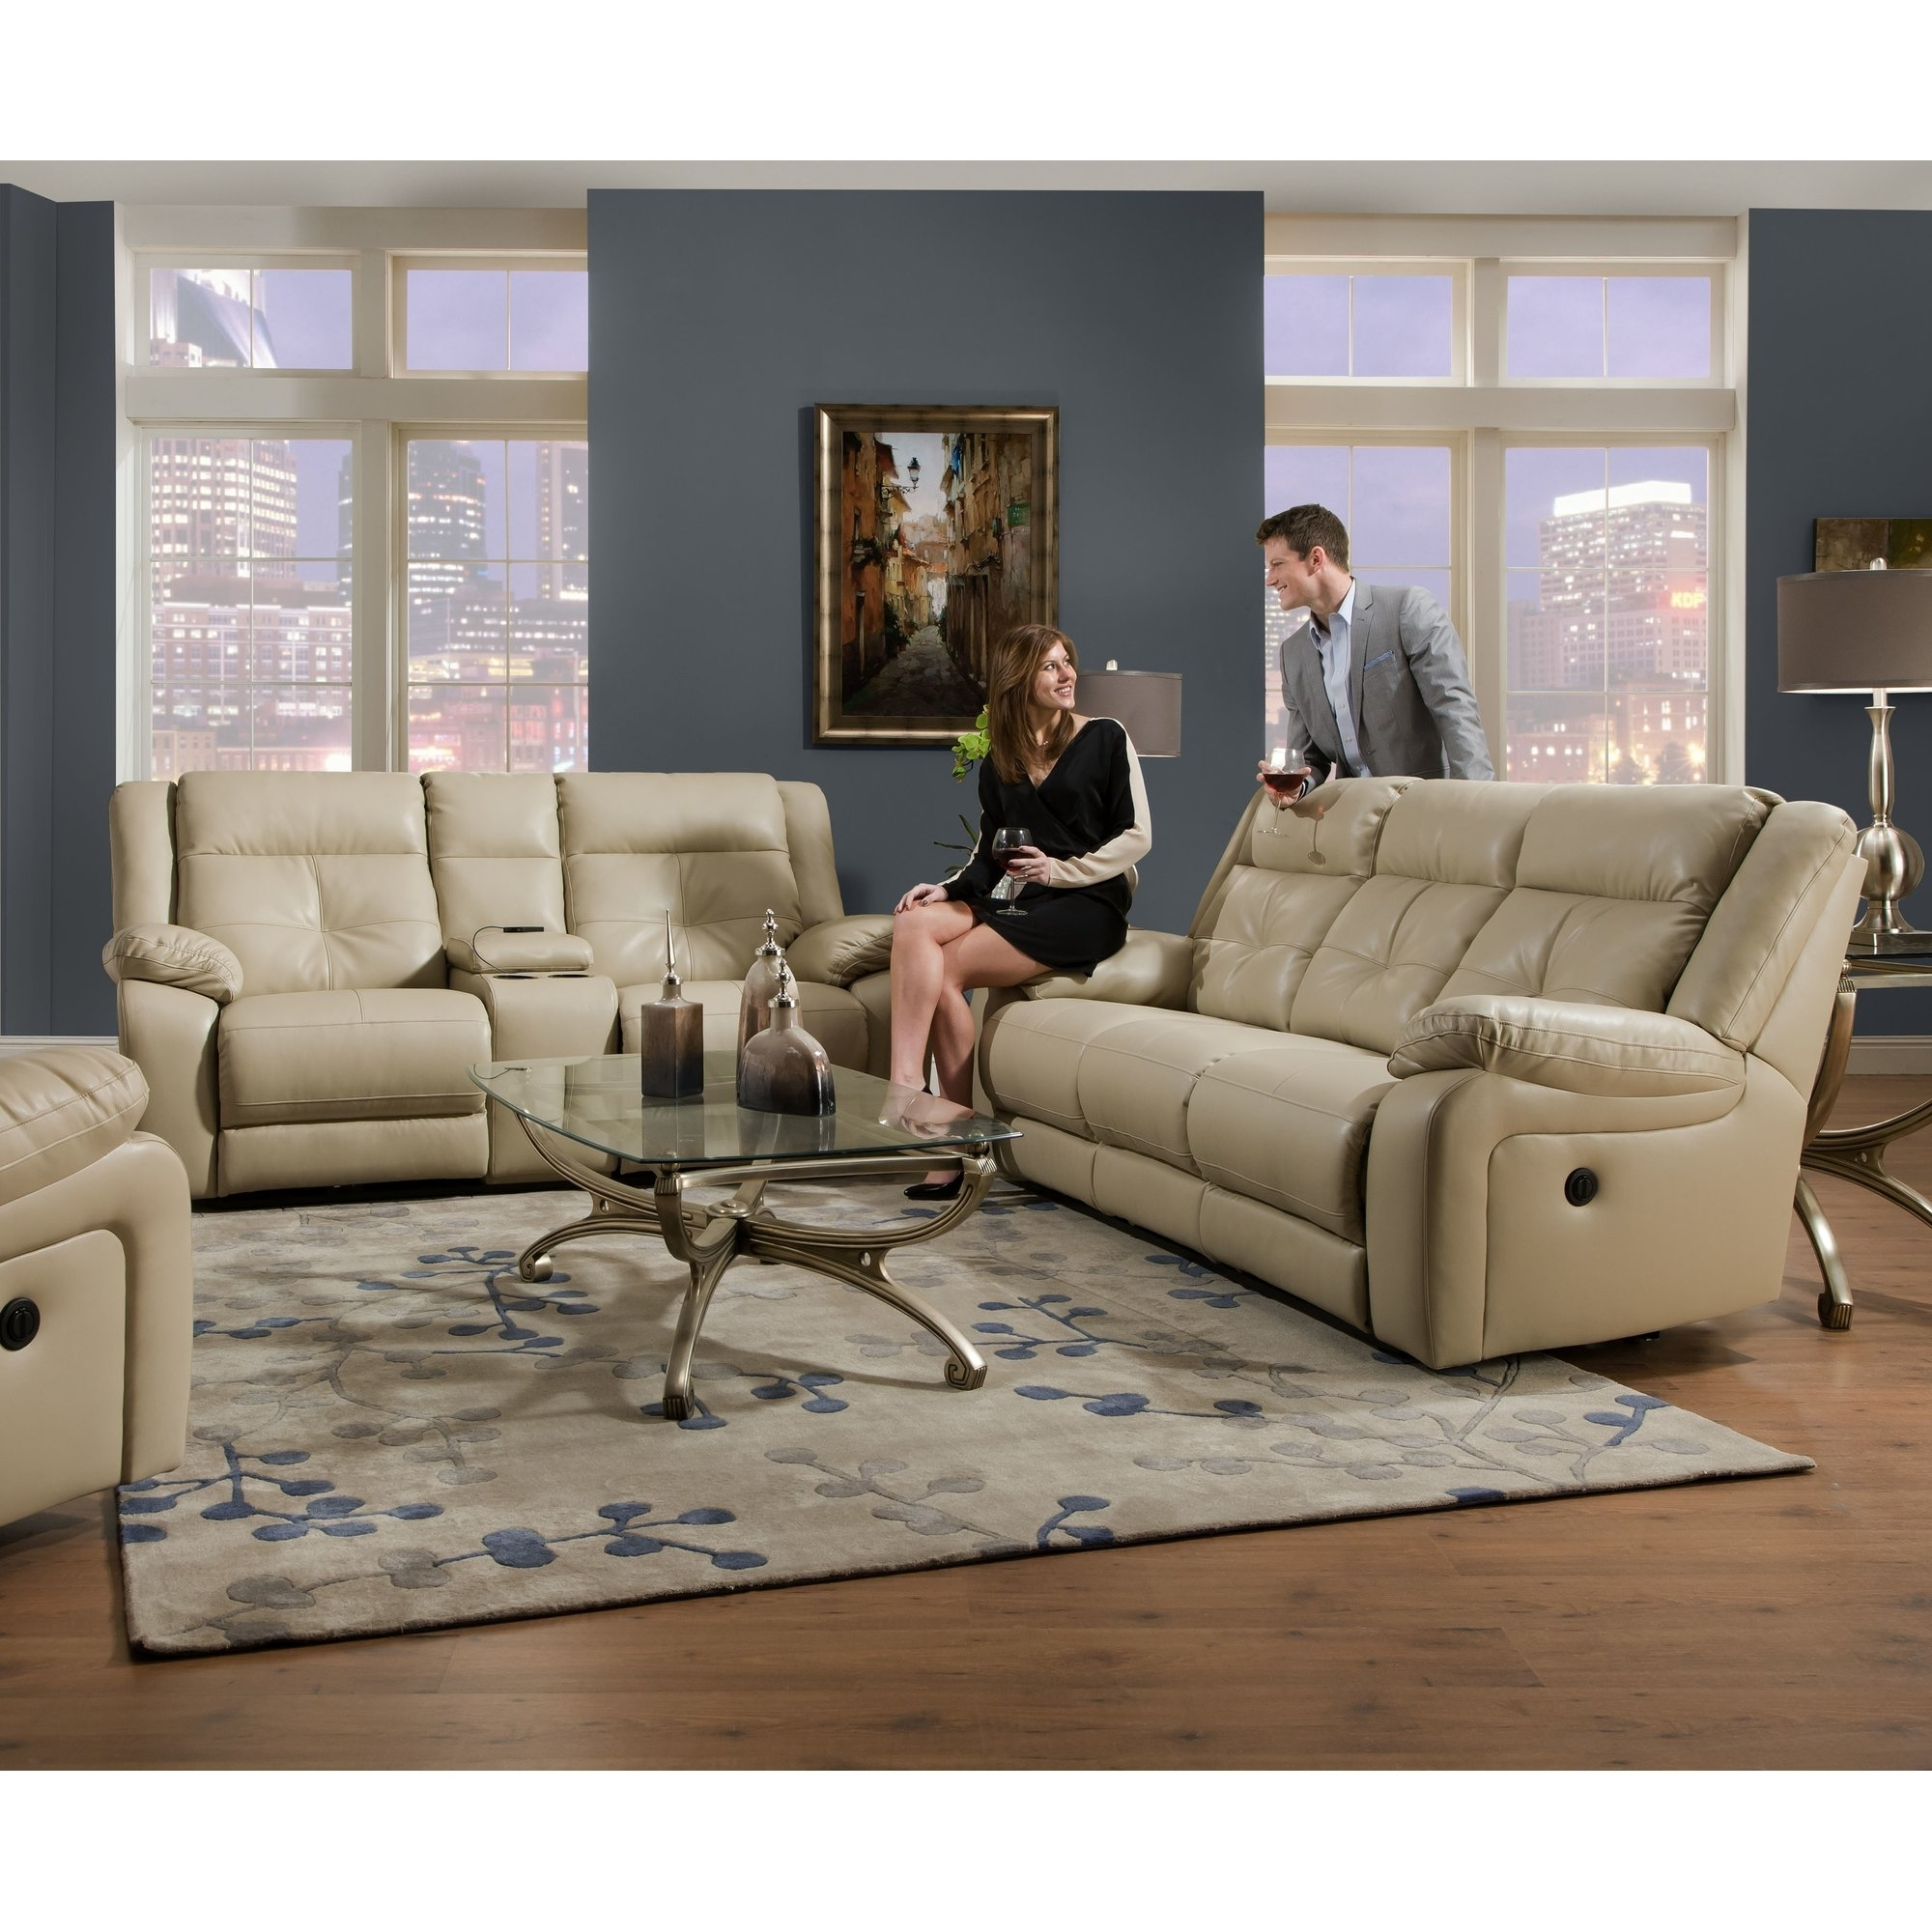 Simmons Sectional Sofa Kmart • Sectional Sofa In Kmart Sectional Sofas (Image 10 of 10)